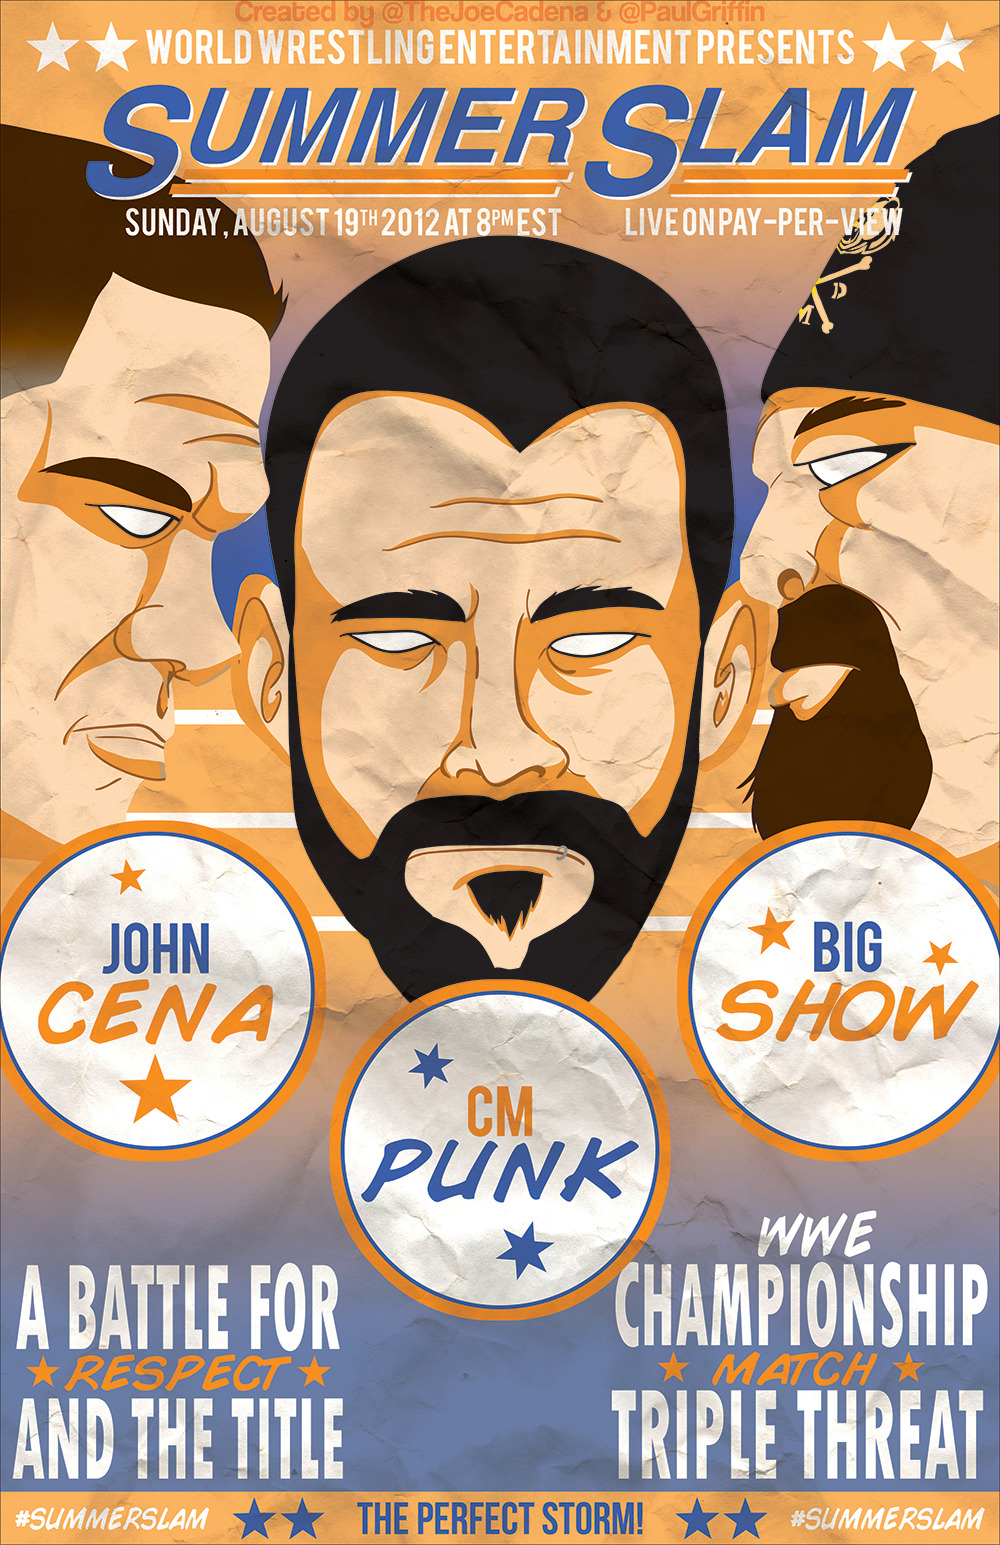 Vintage WWE Summerslam Poster created by myself (@PaulGriffin) and @TheJoeCadena.